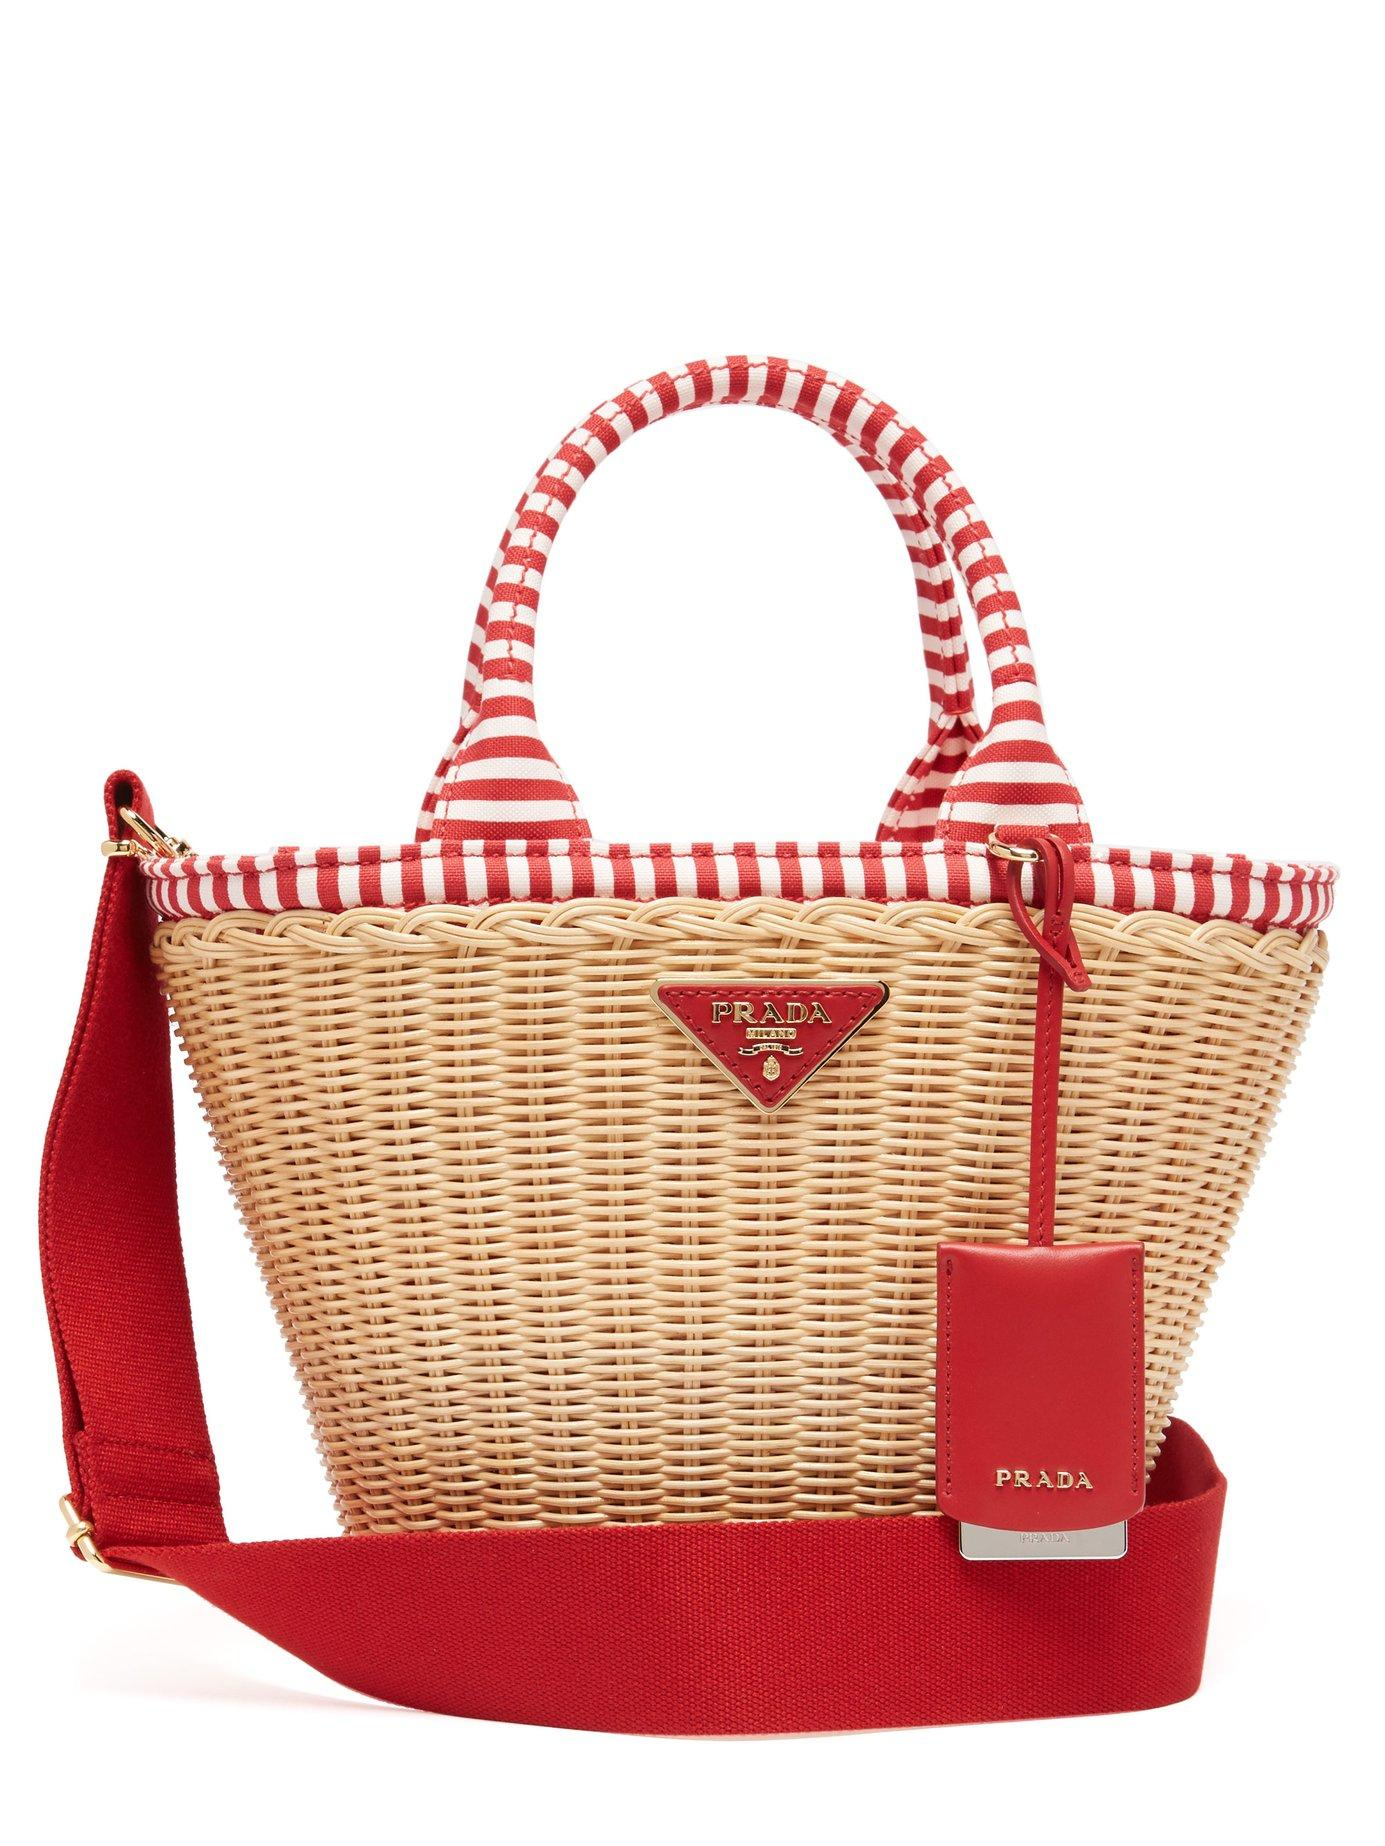 7d9188321f6caf Prada - Red Wicker And Canvas Basket Bag - Lyst. View fullscreen